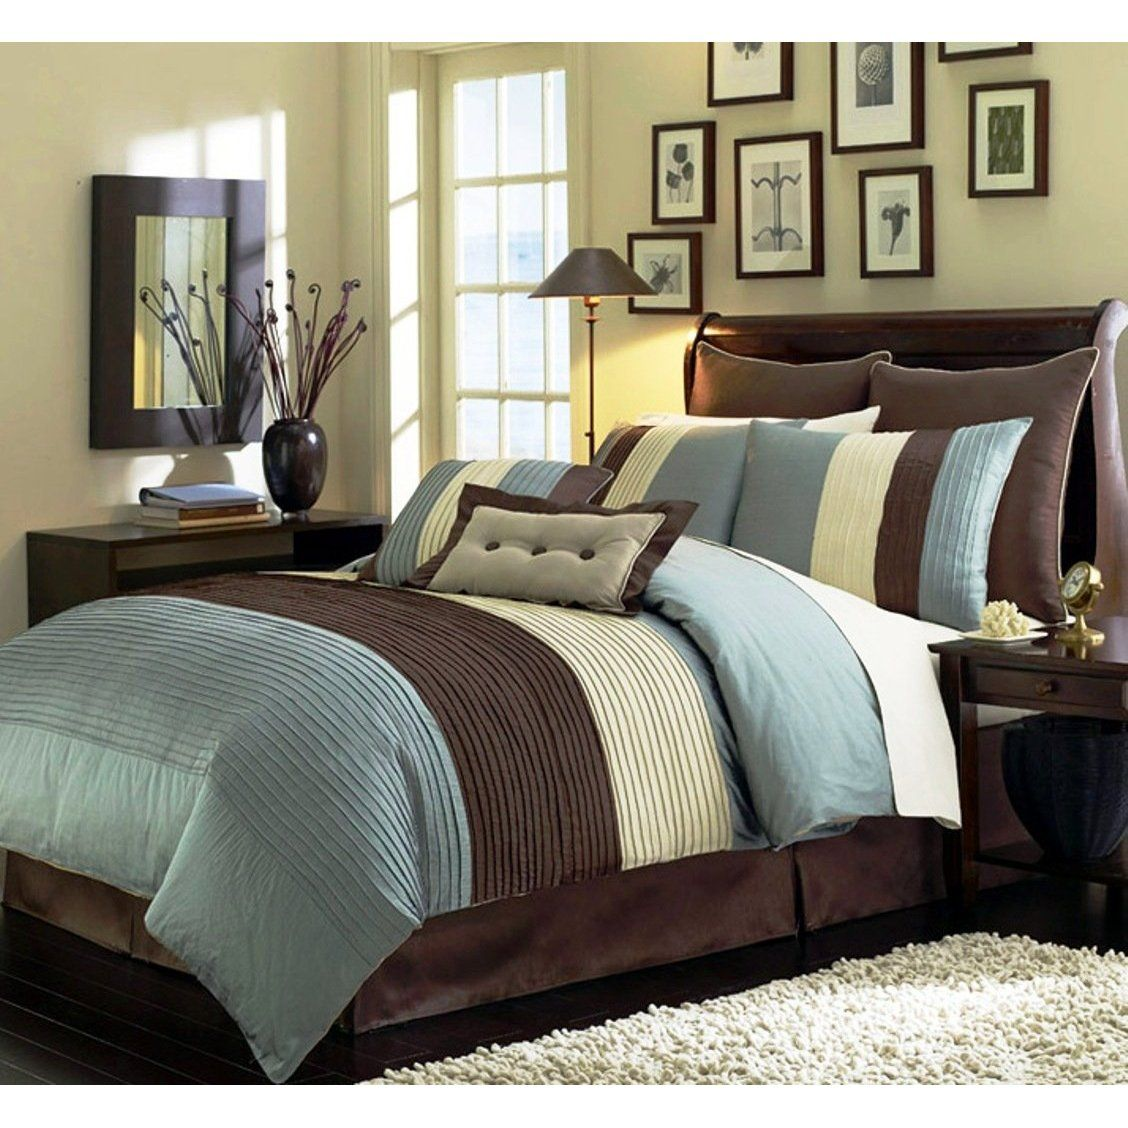 Bedroom Designs Blue And Brown chocolate brown and blue bedding sets | brown comforter, brown and